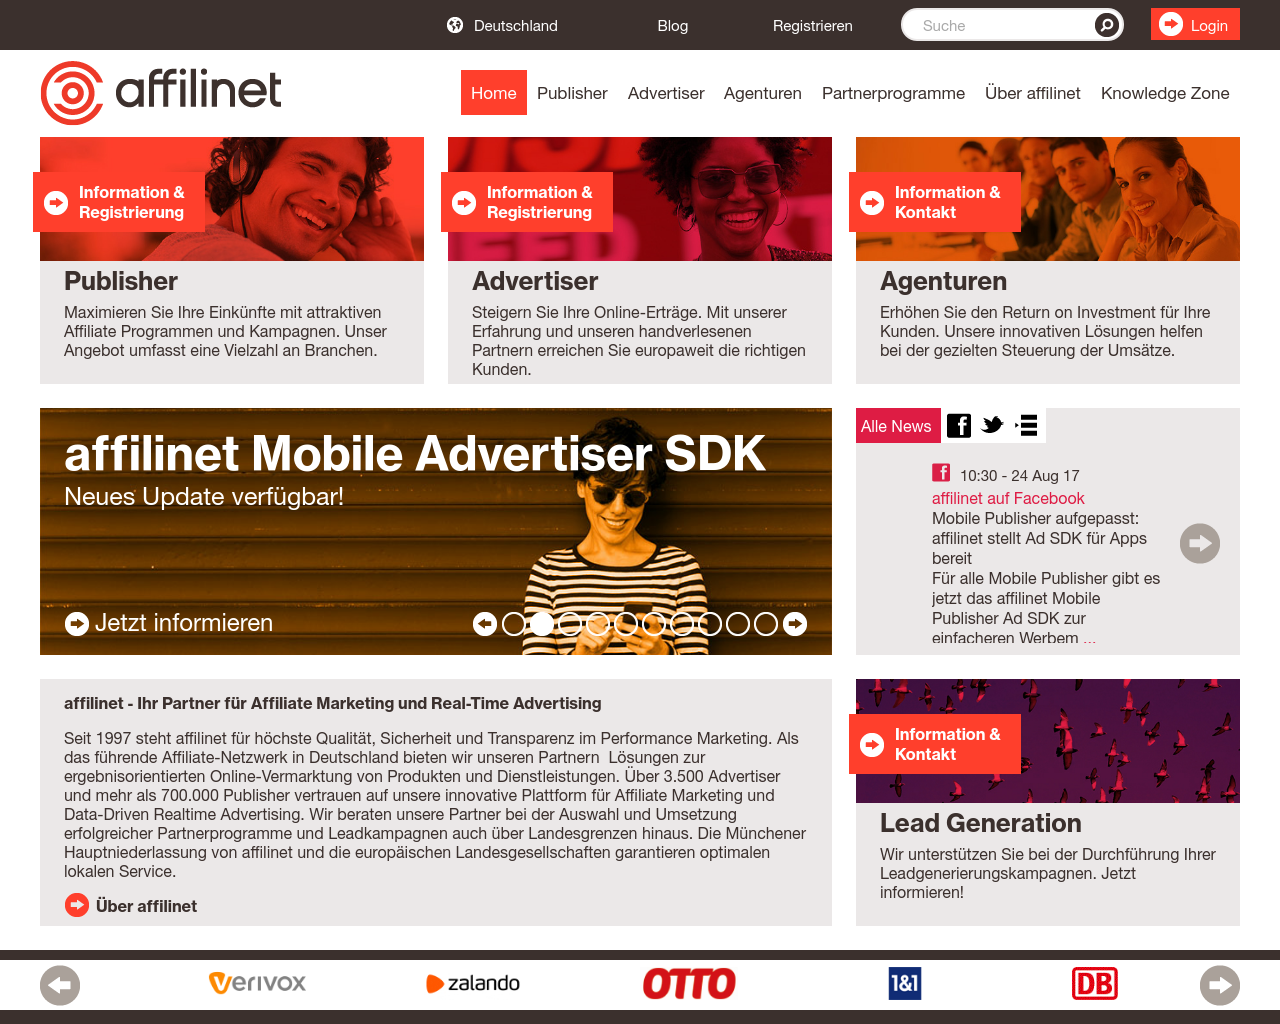 Affilinet-Advertising-Reviews-Pricing